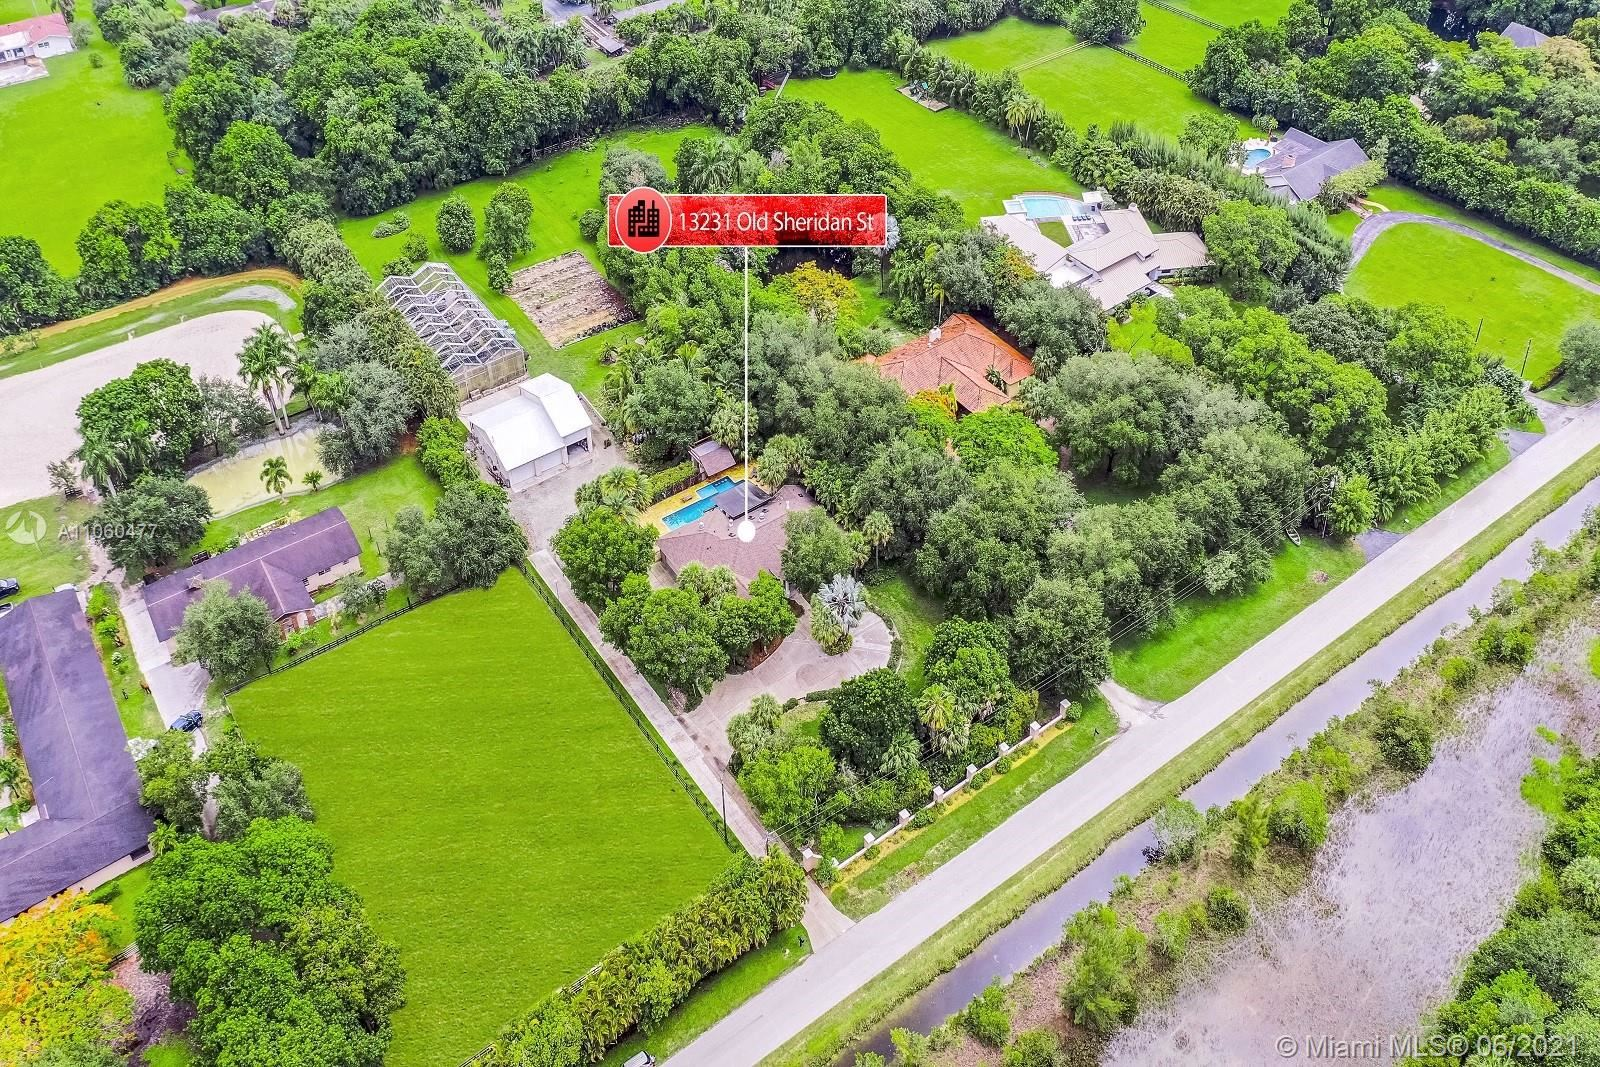 13231 Old Sheridan St, SouthWest Ranches, FL 33330 - #: A11060477